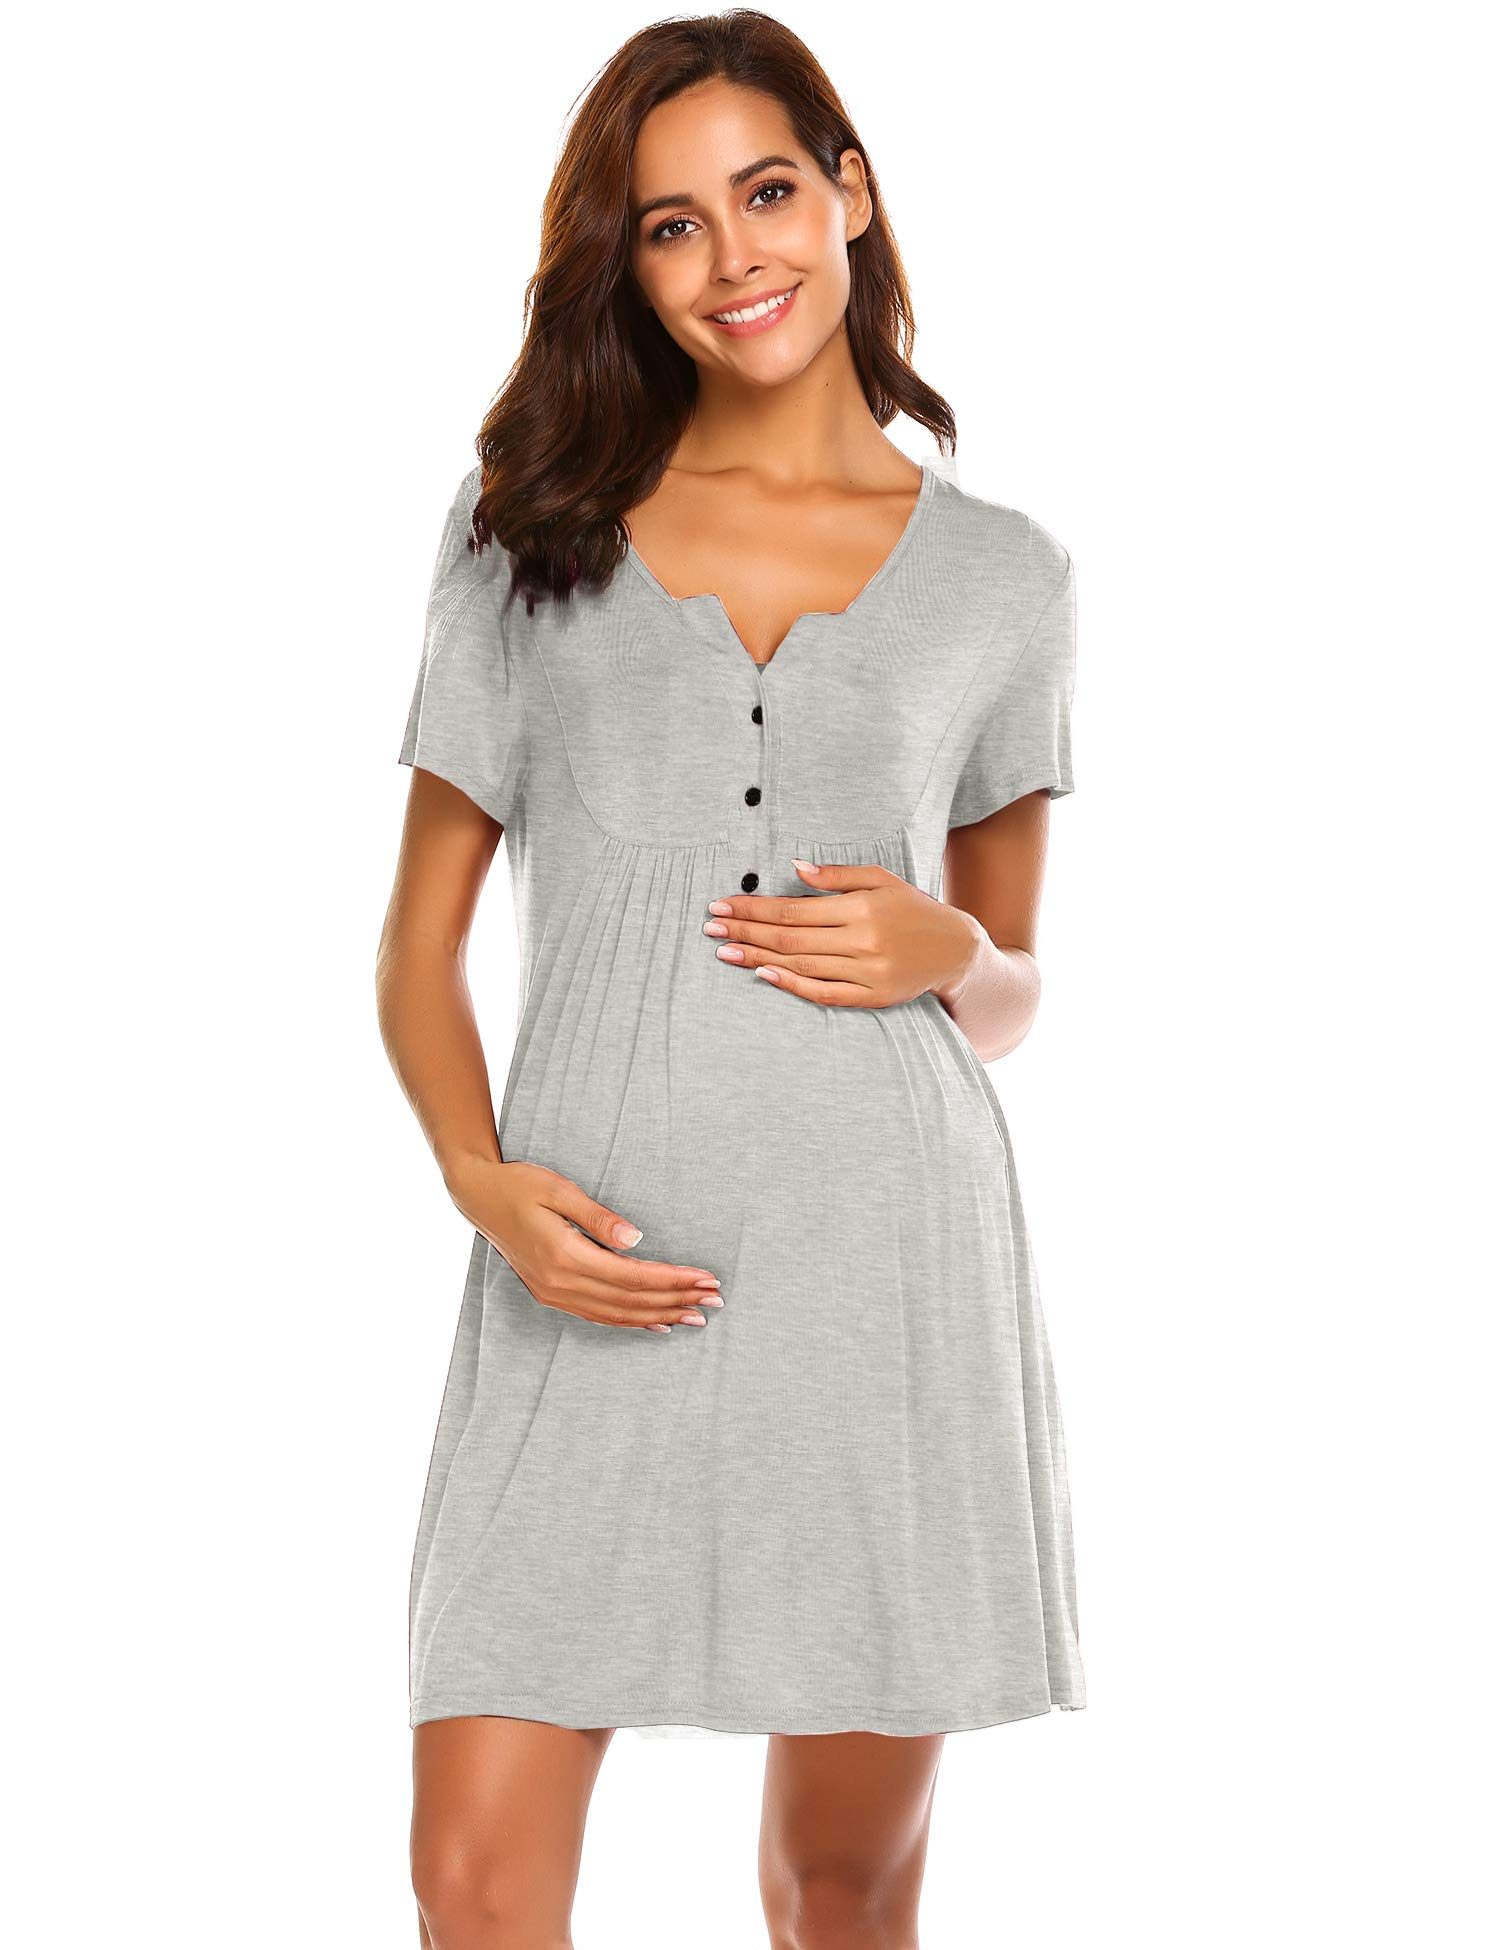 Ekouaer Labor and Delivery Gown, Nursing Nightgown,Maternity Nightgowns for Hospital Short BreastfeedingNightgown S-XXL